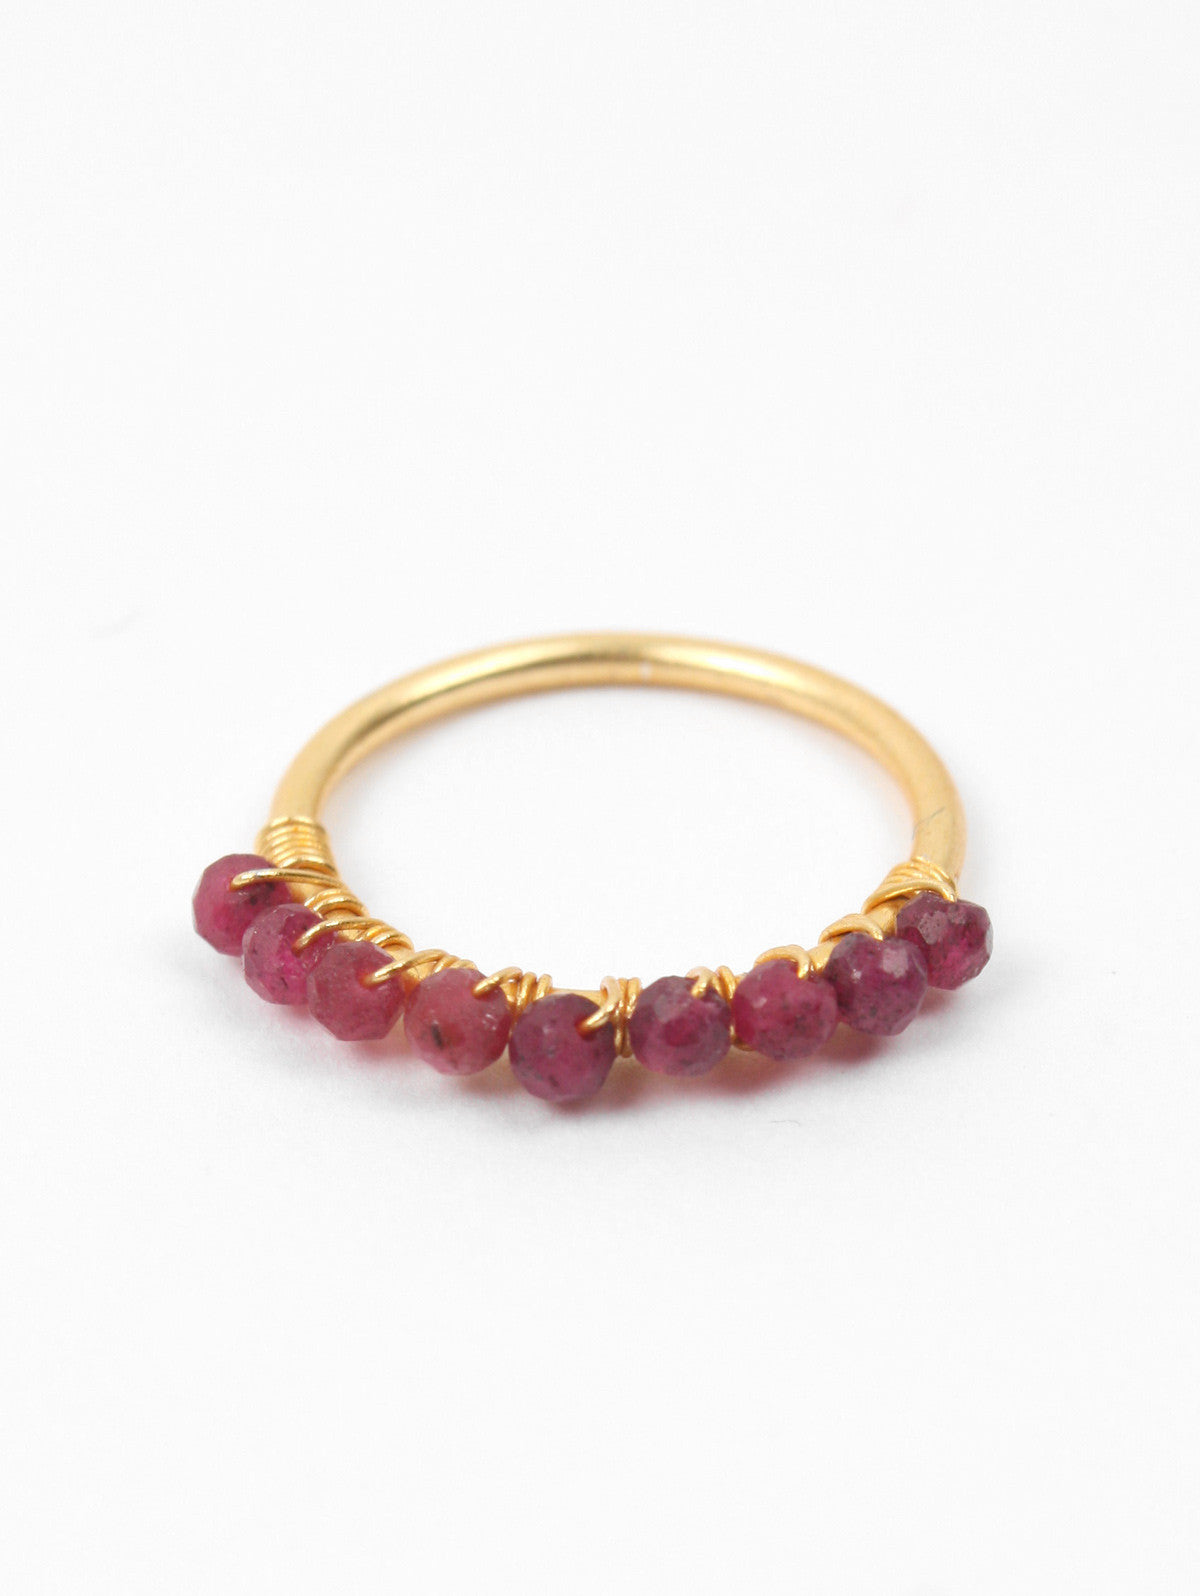 Row Stacking Rings, Ruby